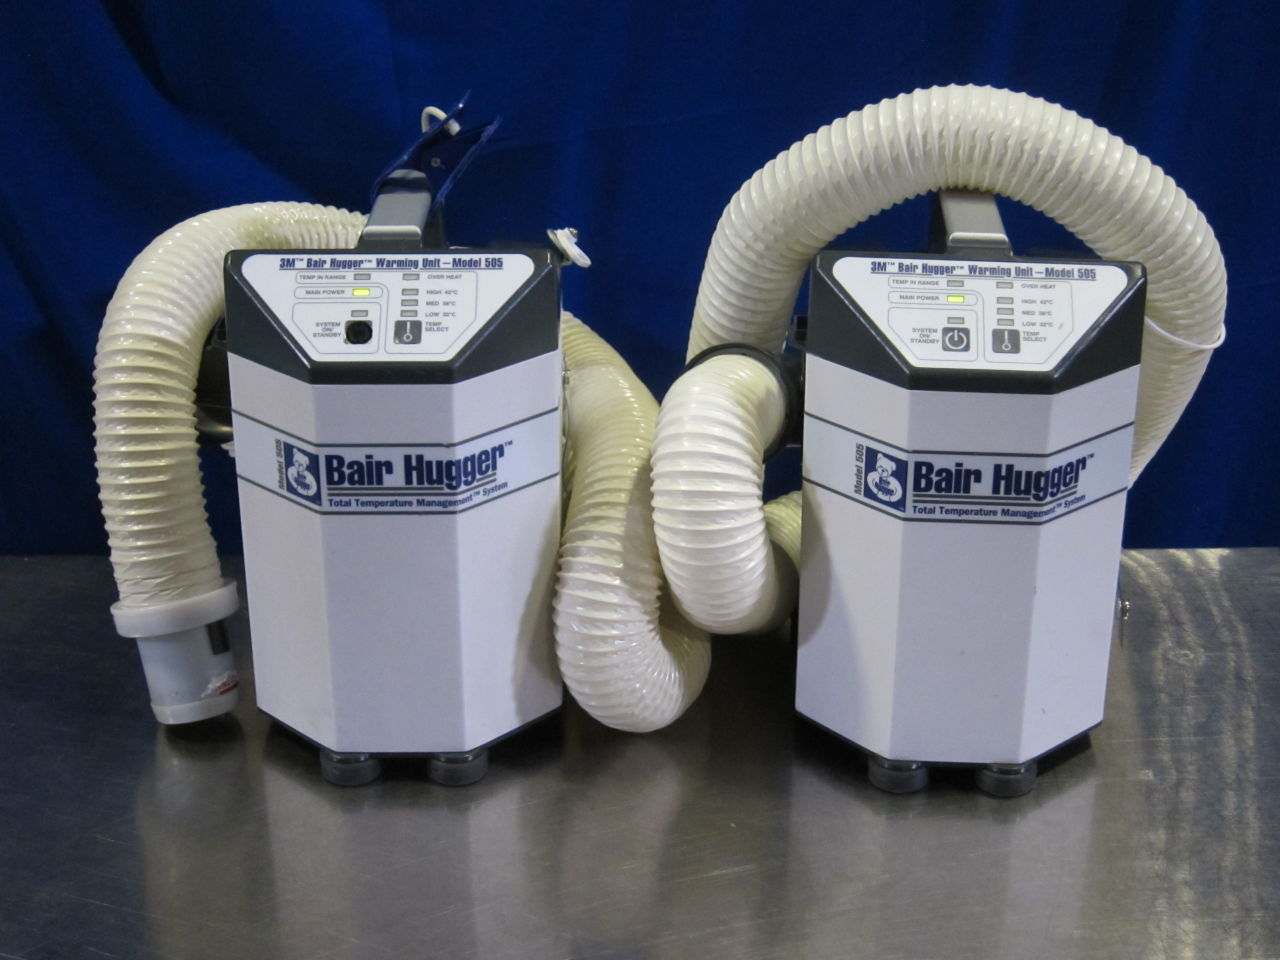 3M Bair Hugger 505  - Lot of 2 Patient Warmer